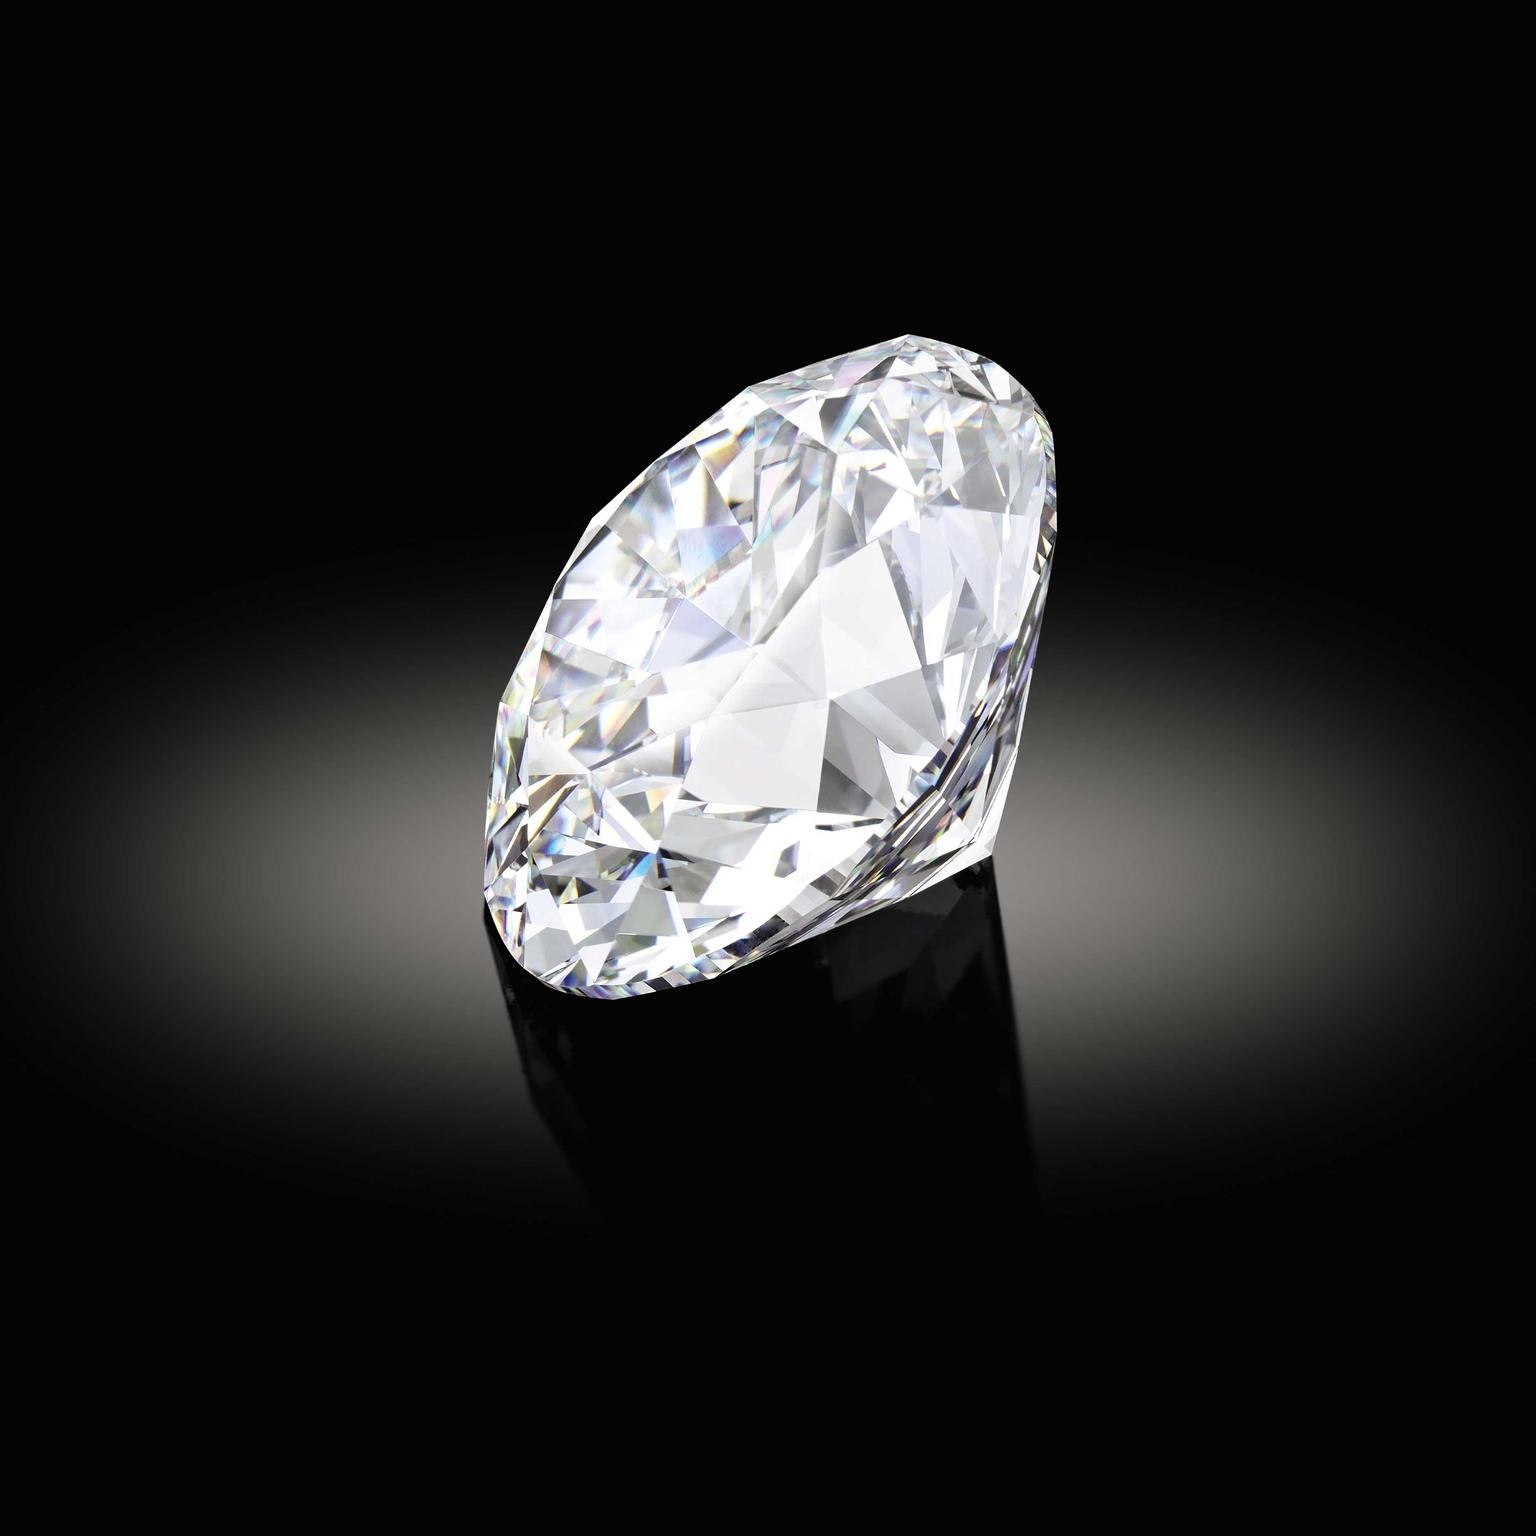 This-102.34-carat-diamond-is-the-largest-D-Flawless-brilliant-cut-diamond-graded-by-the-GIA